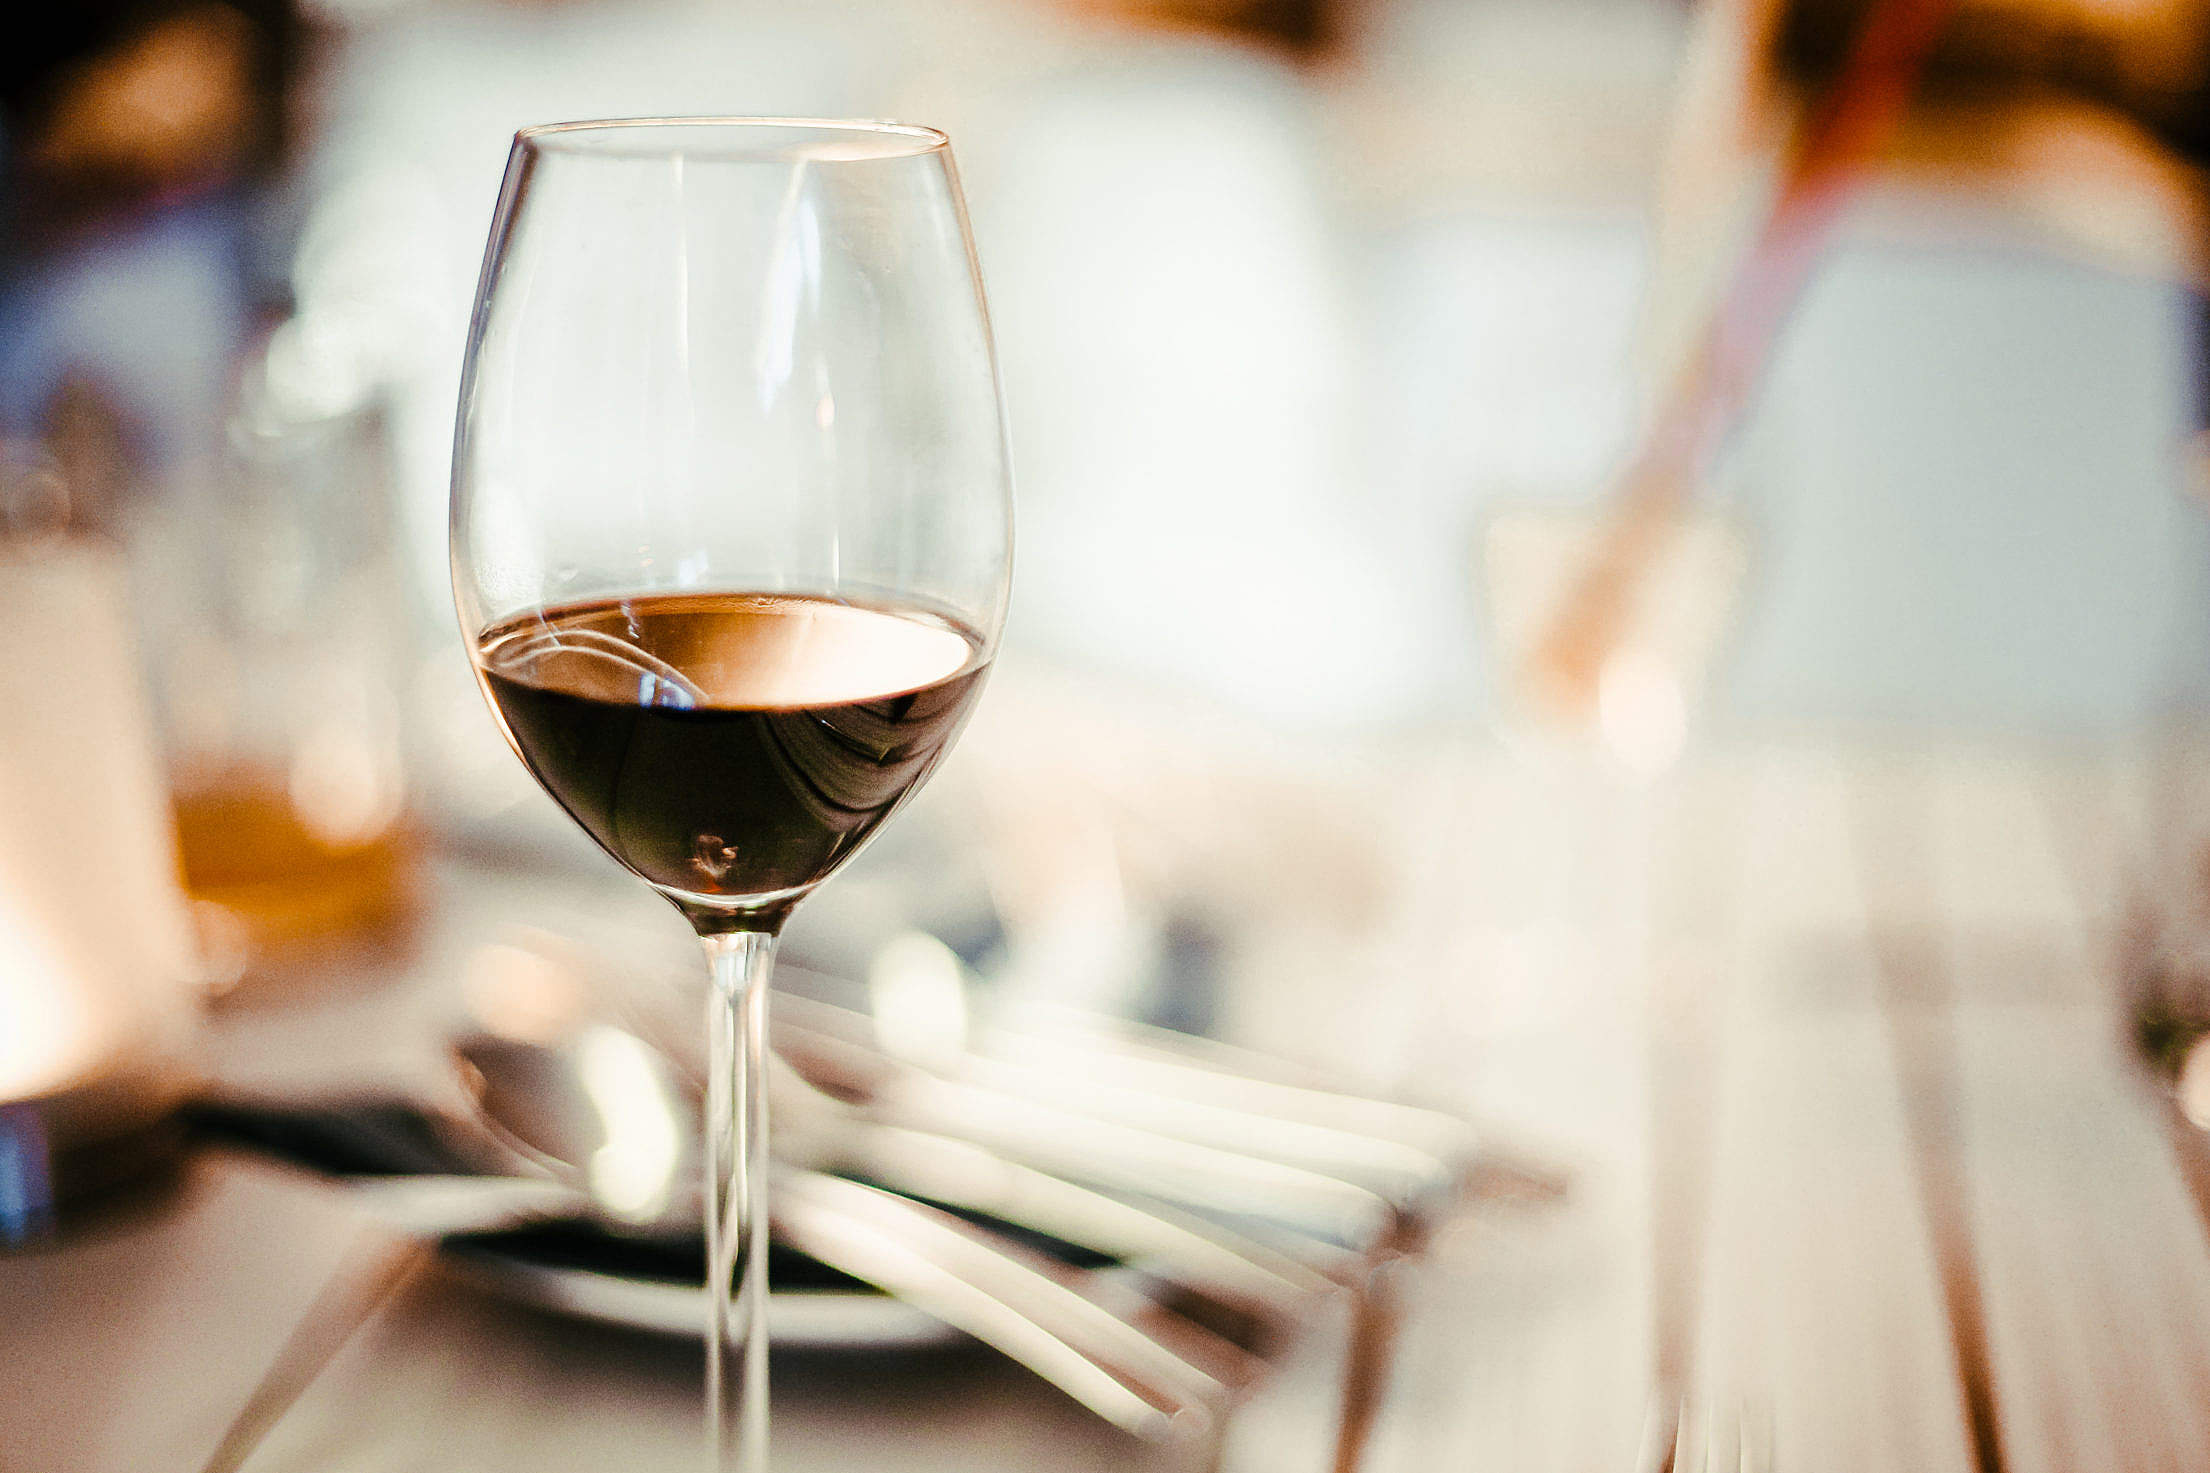 Glass of Wine on the Table Free Stock Photo